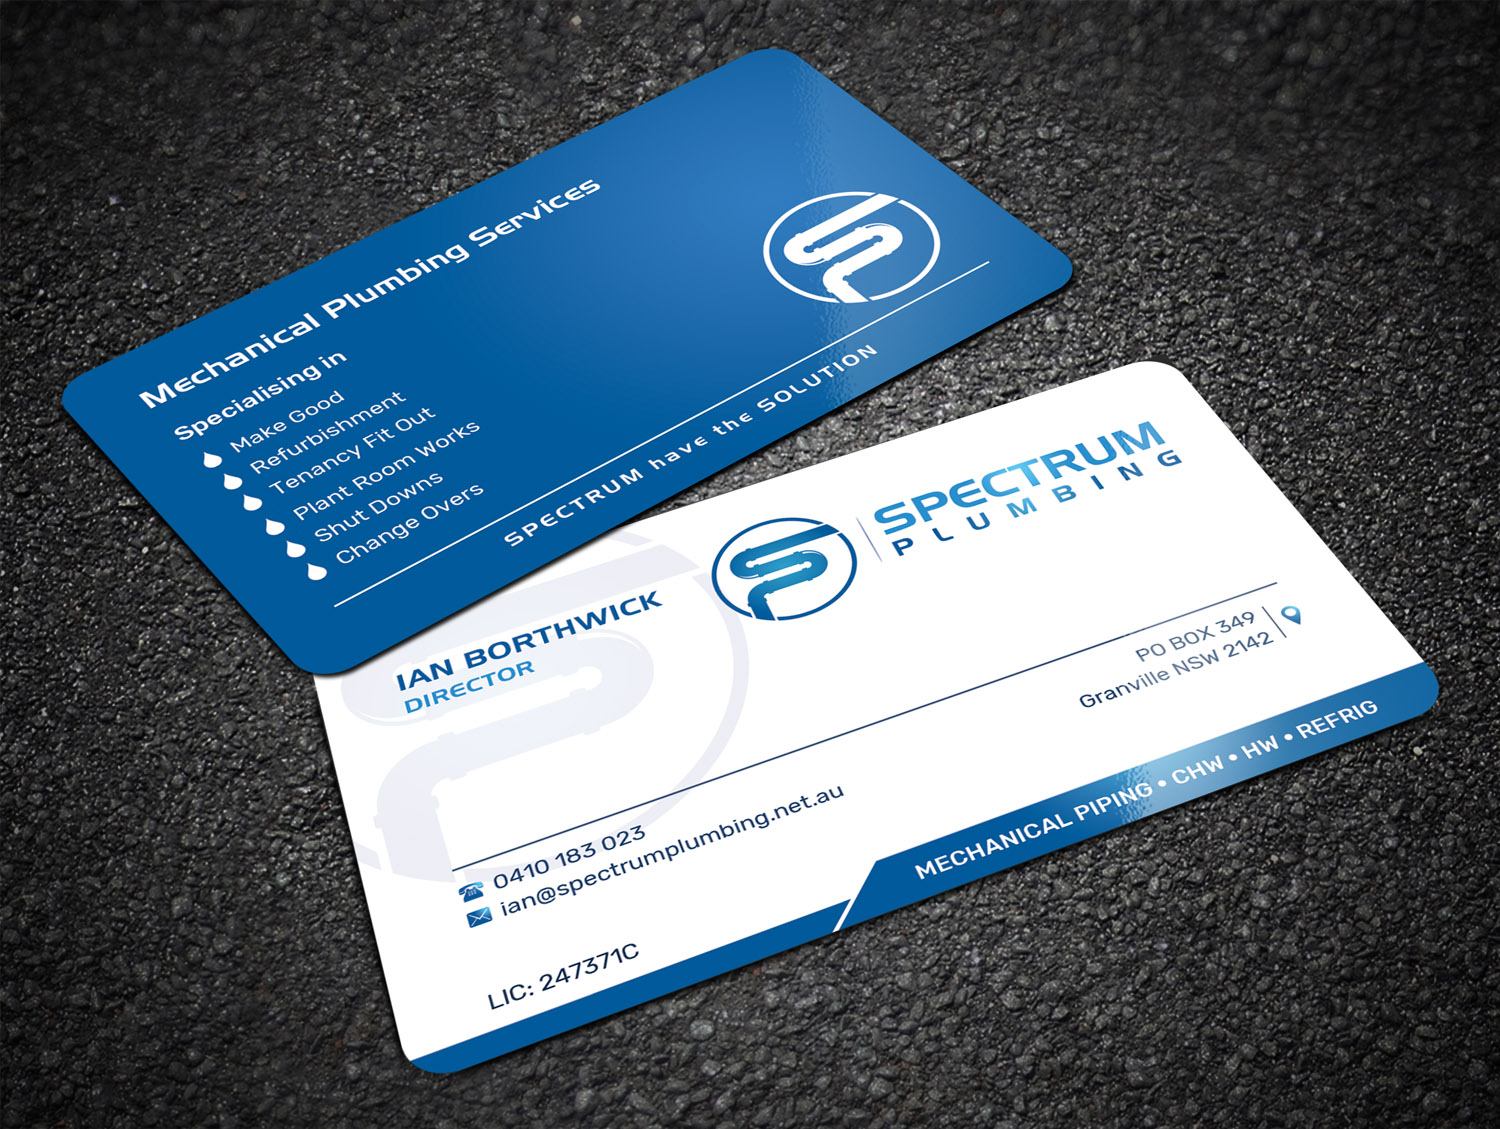 Professional serious plumbing business card design for spectrum business card design by sandaruwan for spectrum plumbing design 17960664 reheart Choice Image